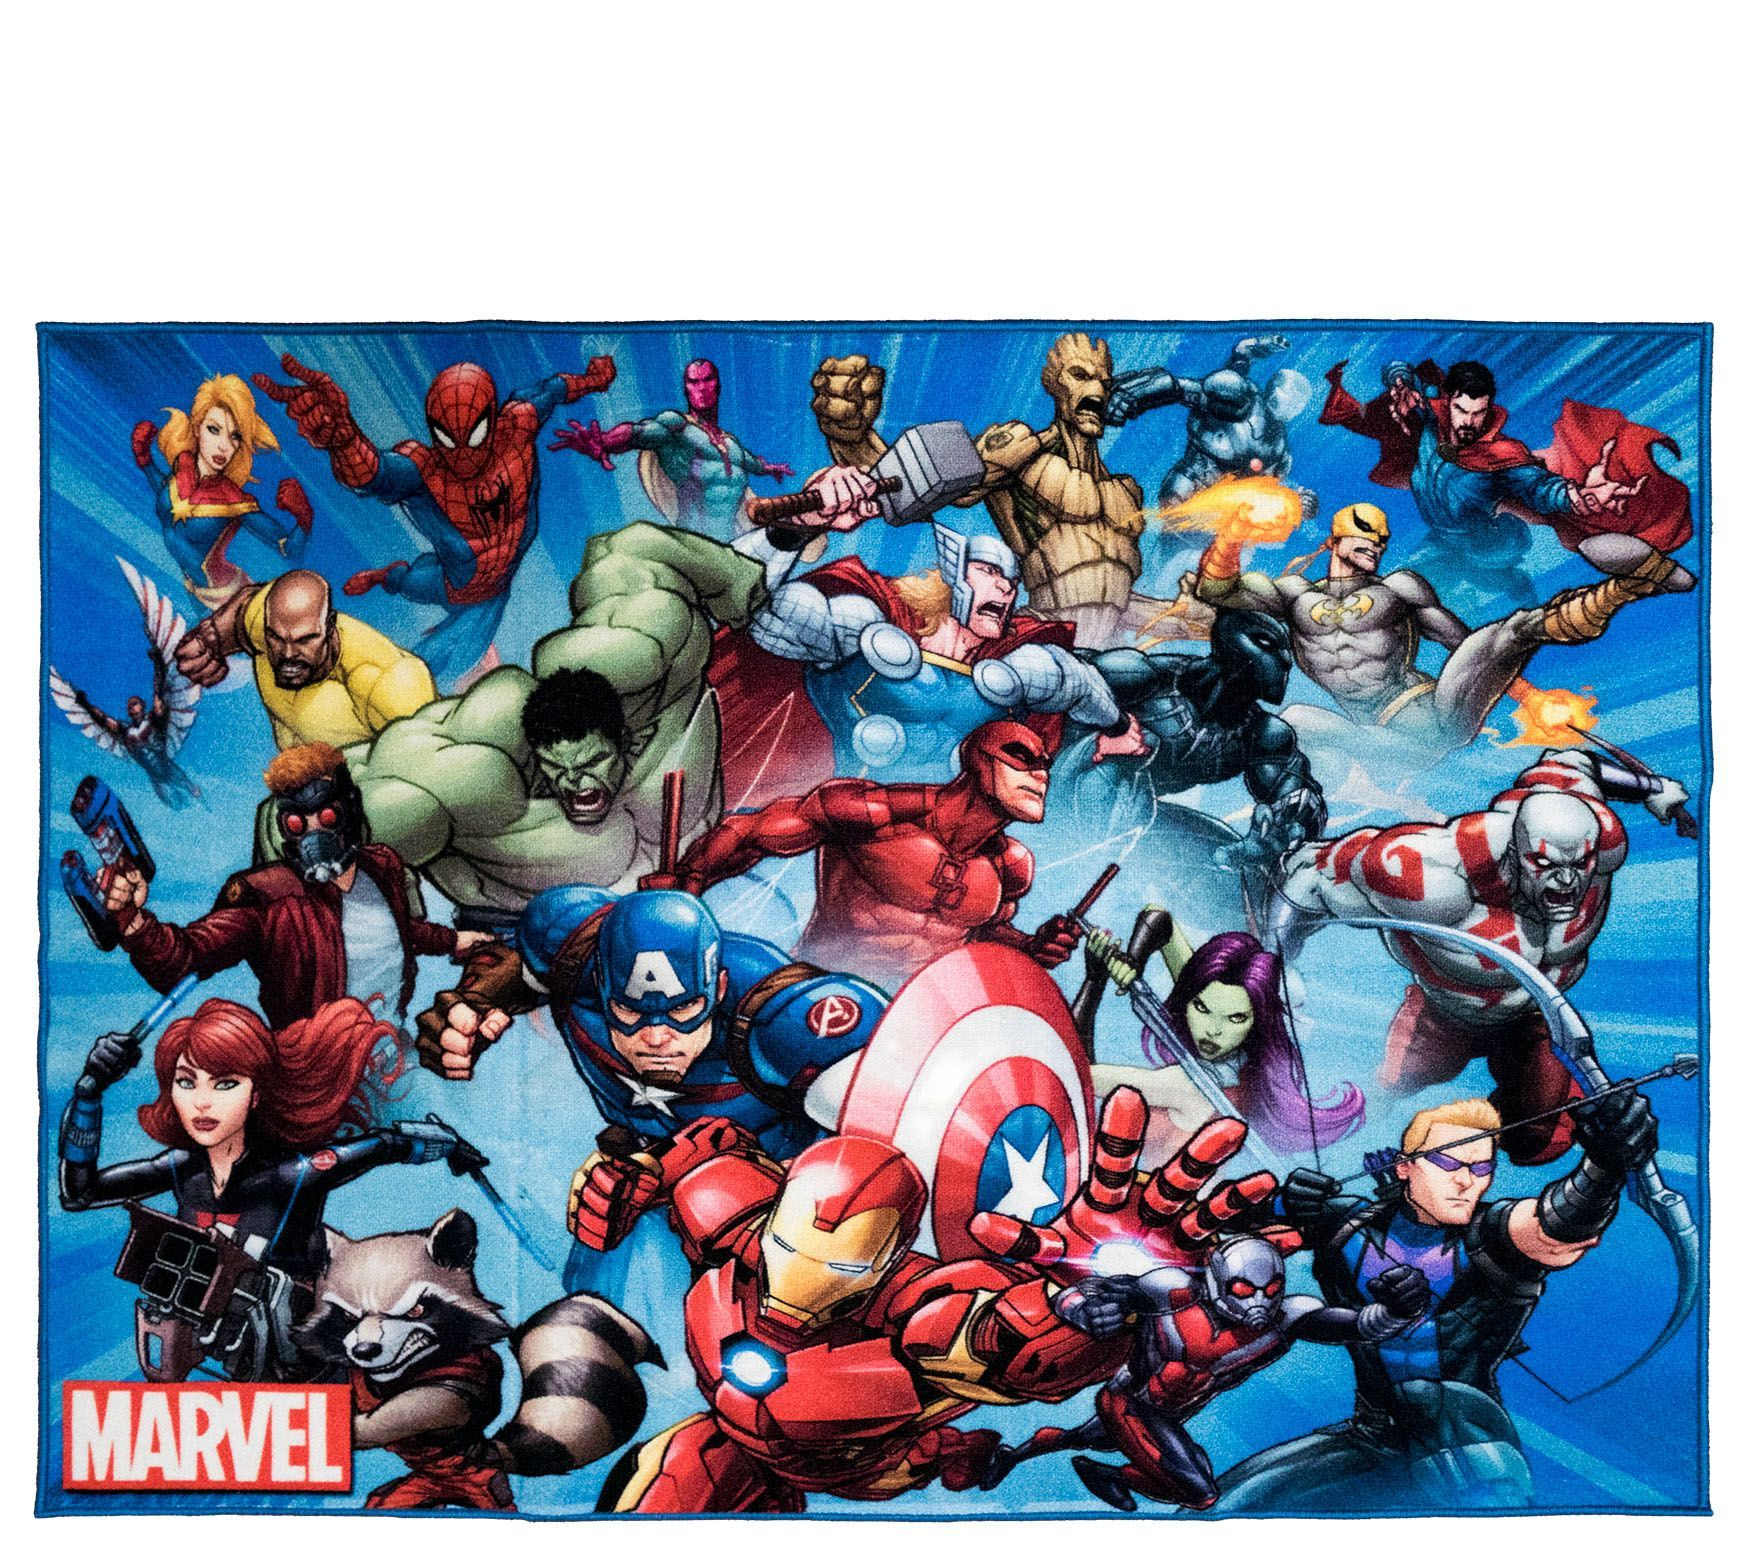 Avengers Group 4 6 X 6 6 Area Rug Qvc Com Superhero Bedding Avengers Comics Avengers Fan Art